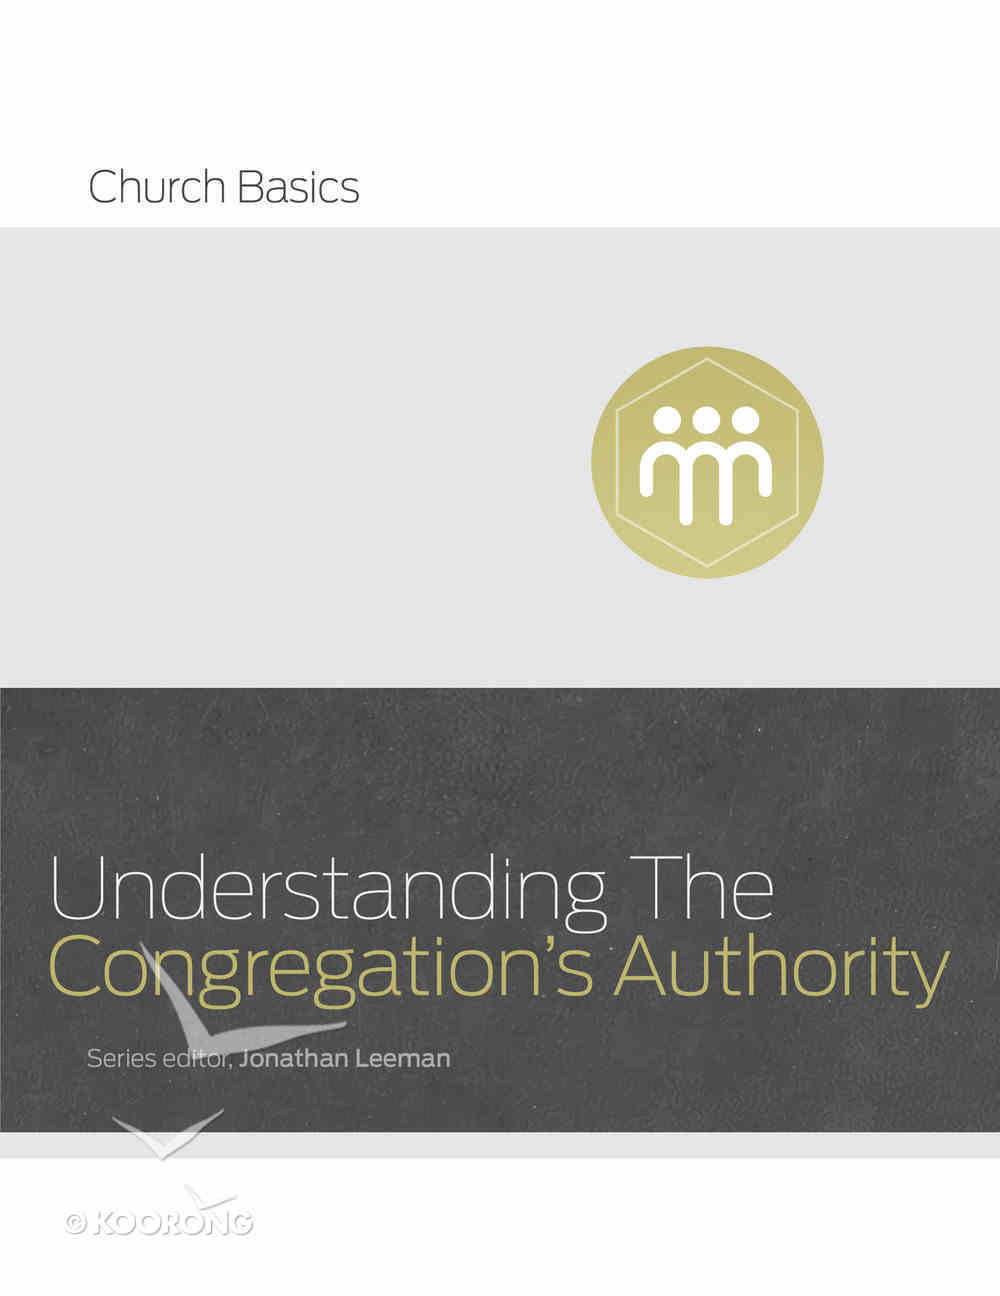 Understanding the Congregation's Authority (Church Basics Series) Paperback